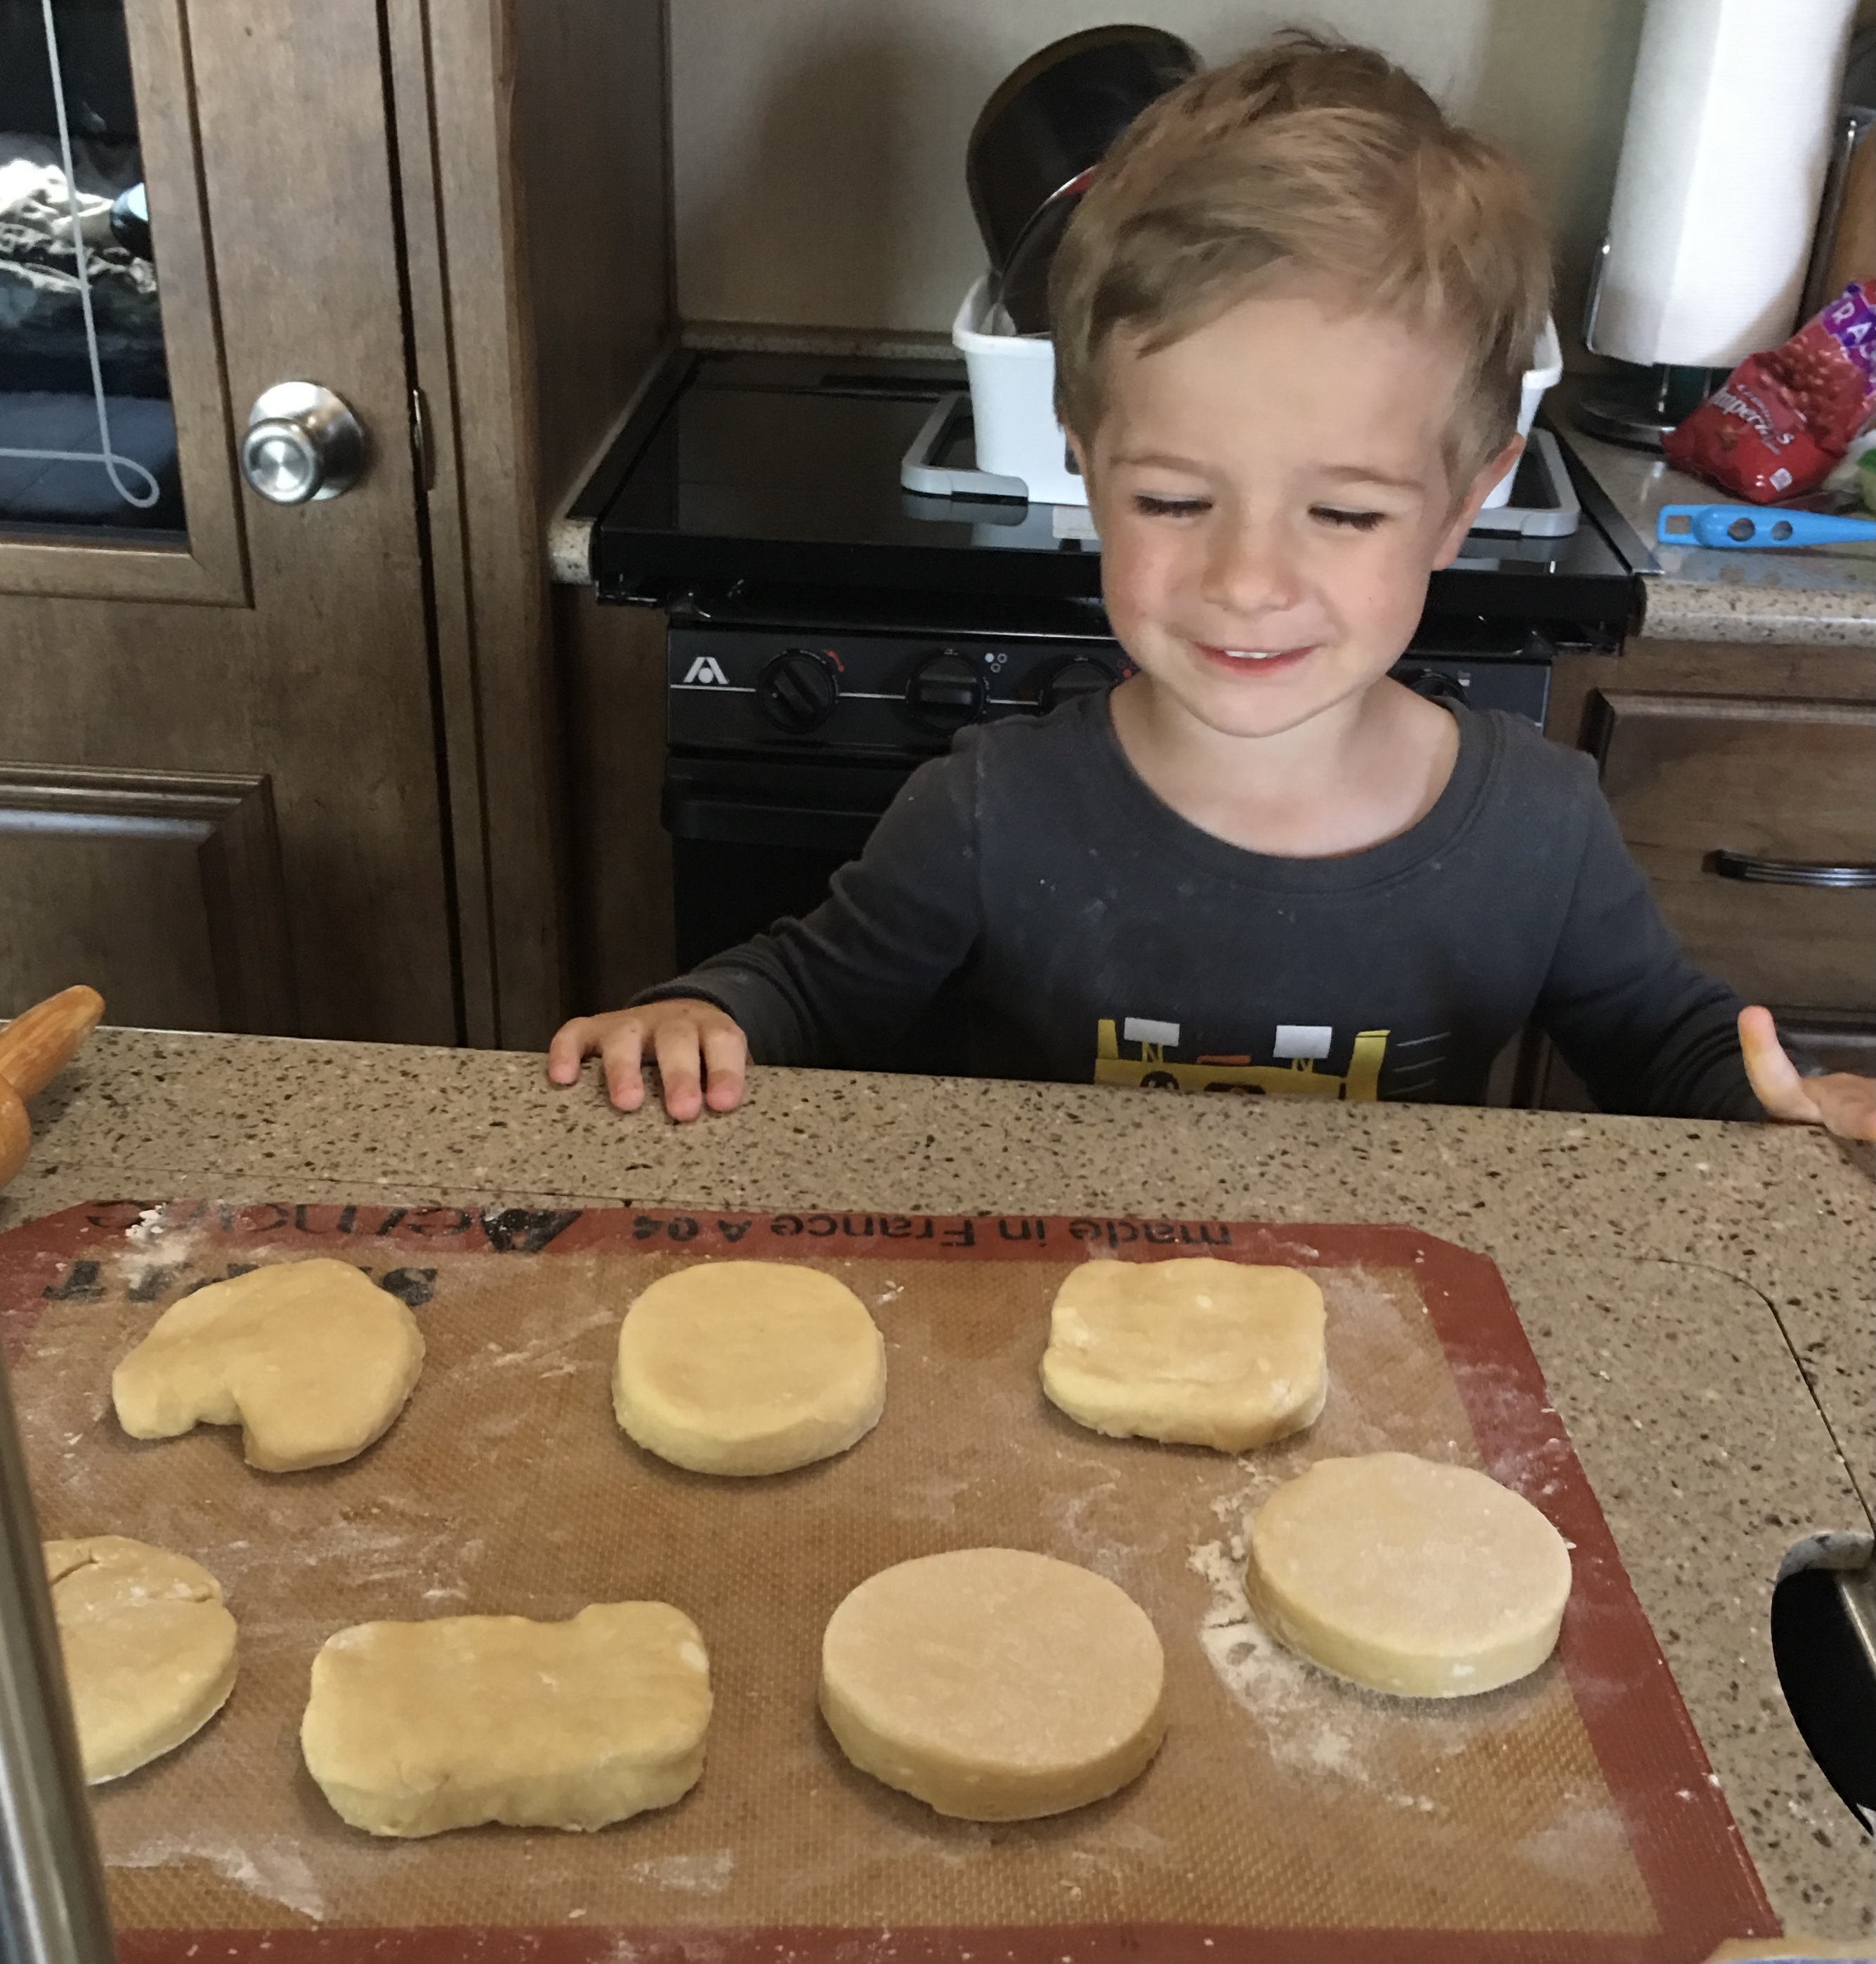 photo of my son Ryder heling me cut out these cookies in our RV